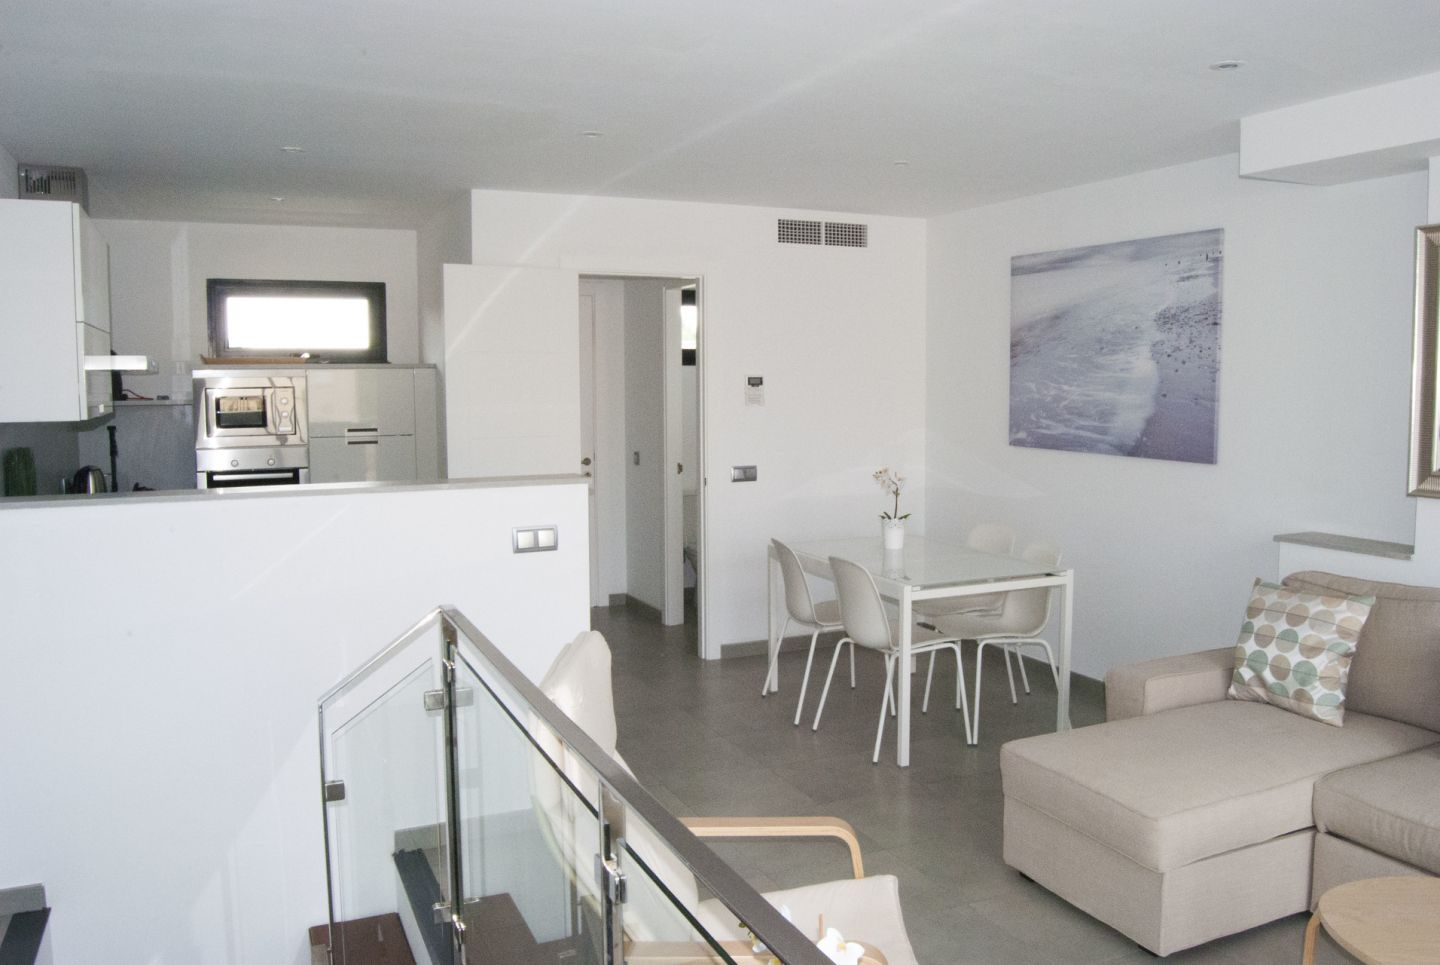 3 Bed Duplex for sale in PUERTO POLLENSA 3